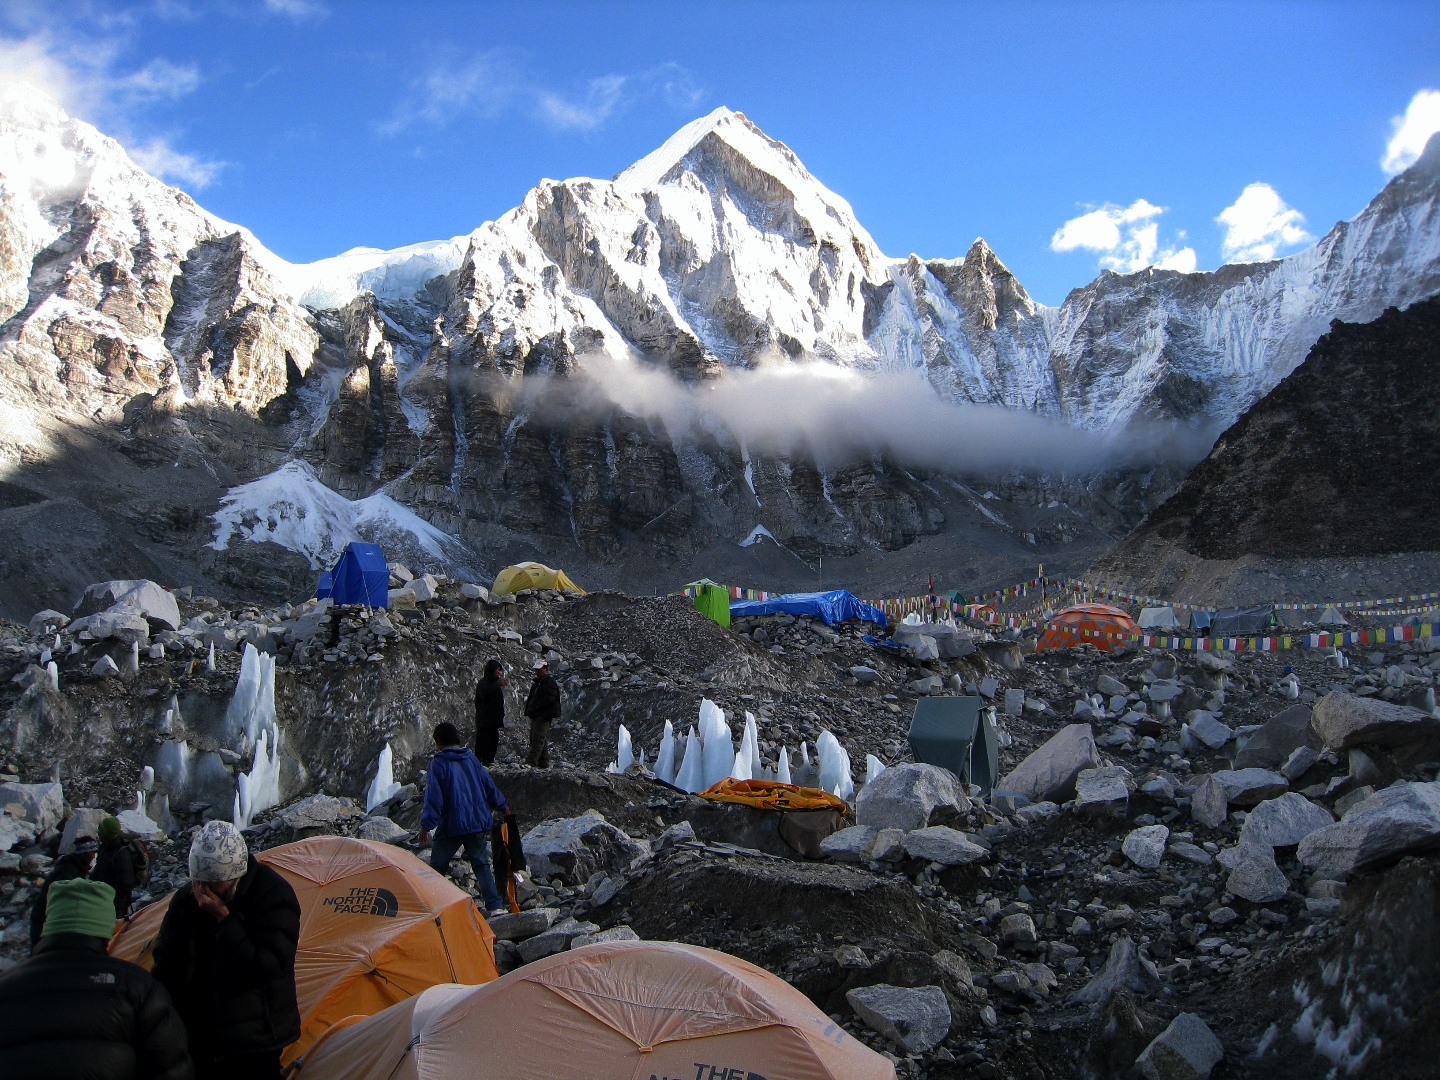 Tents at the end of the season after summit period